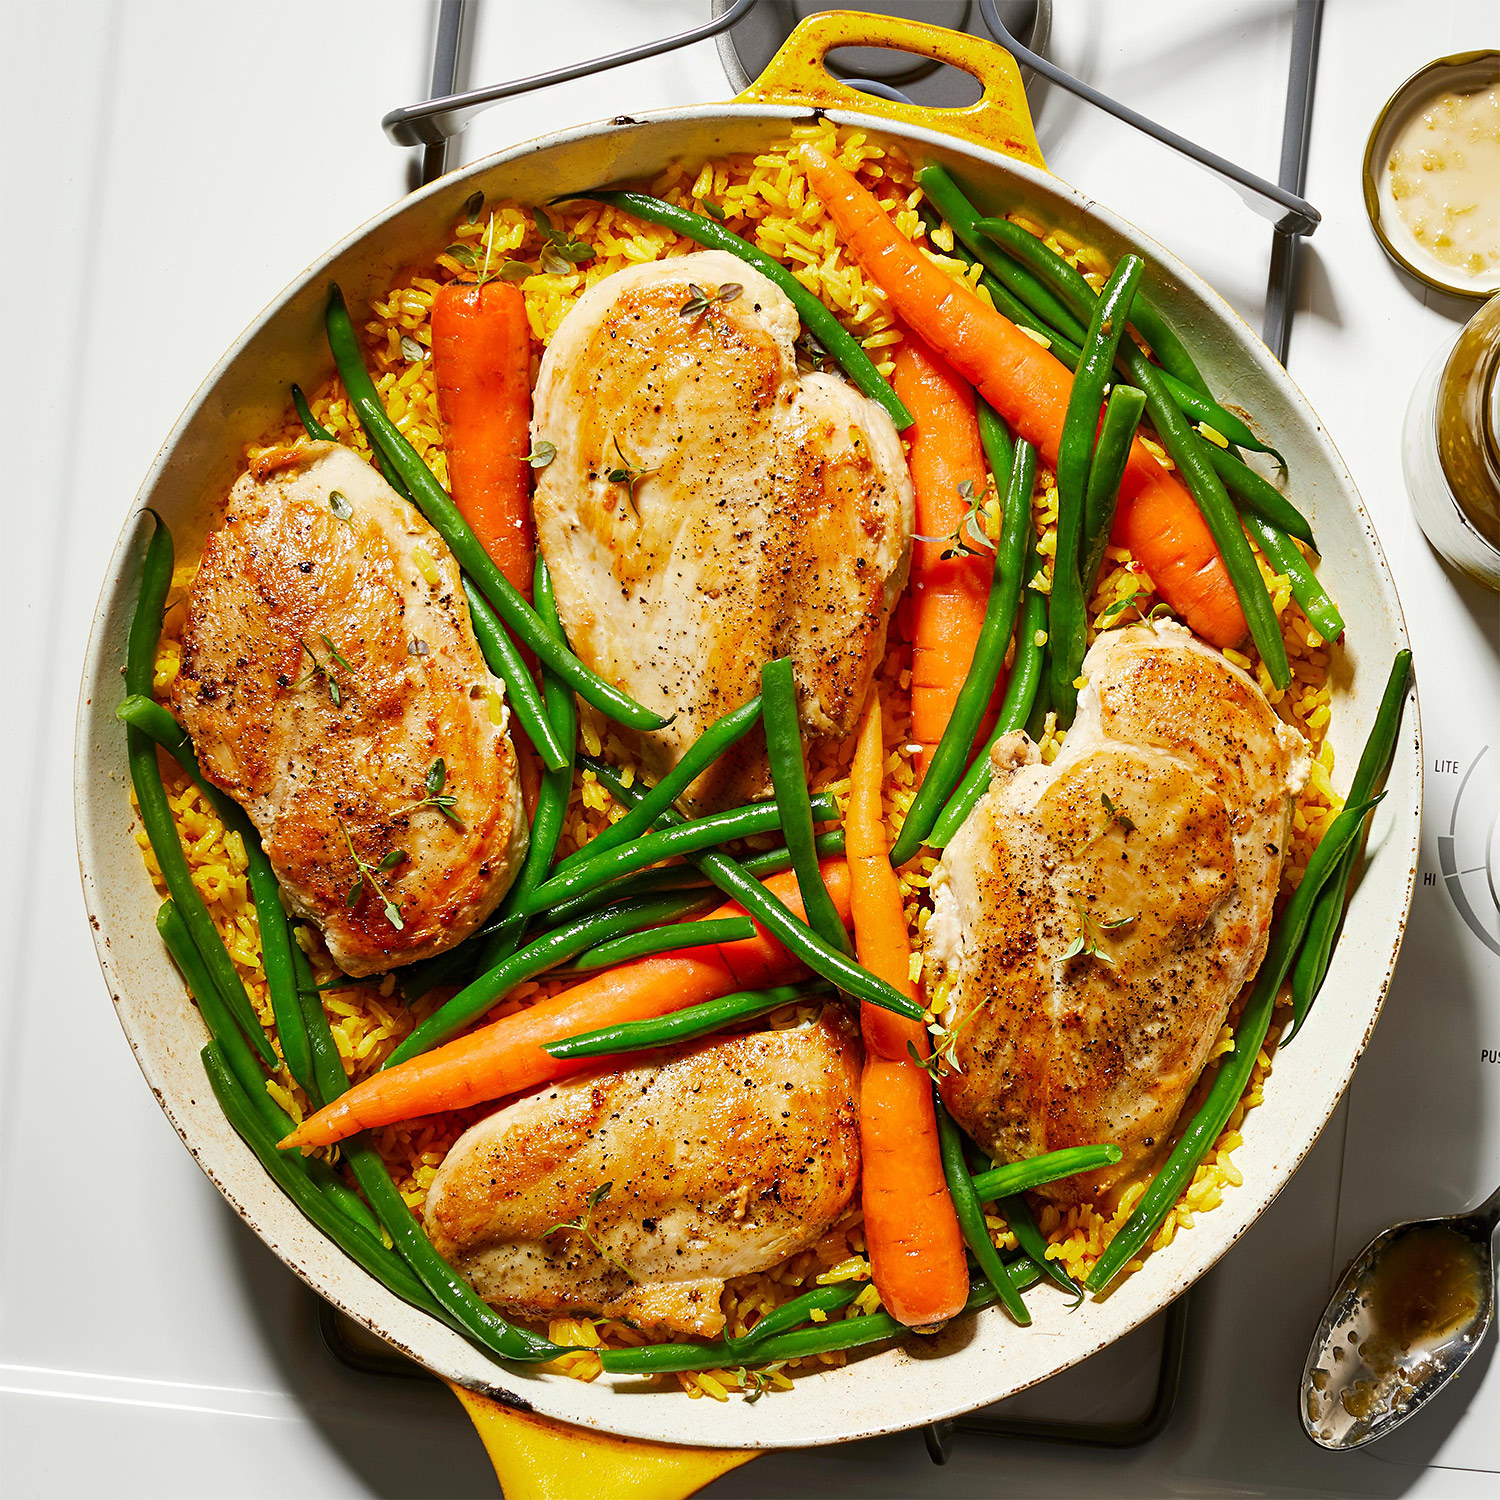 Chicken and Veggie Skillet